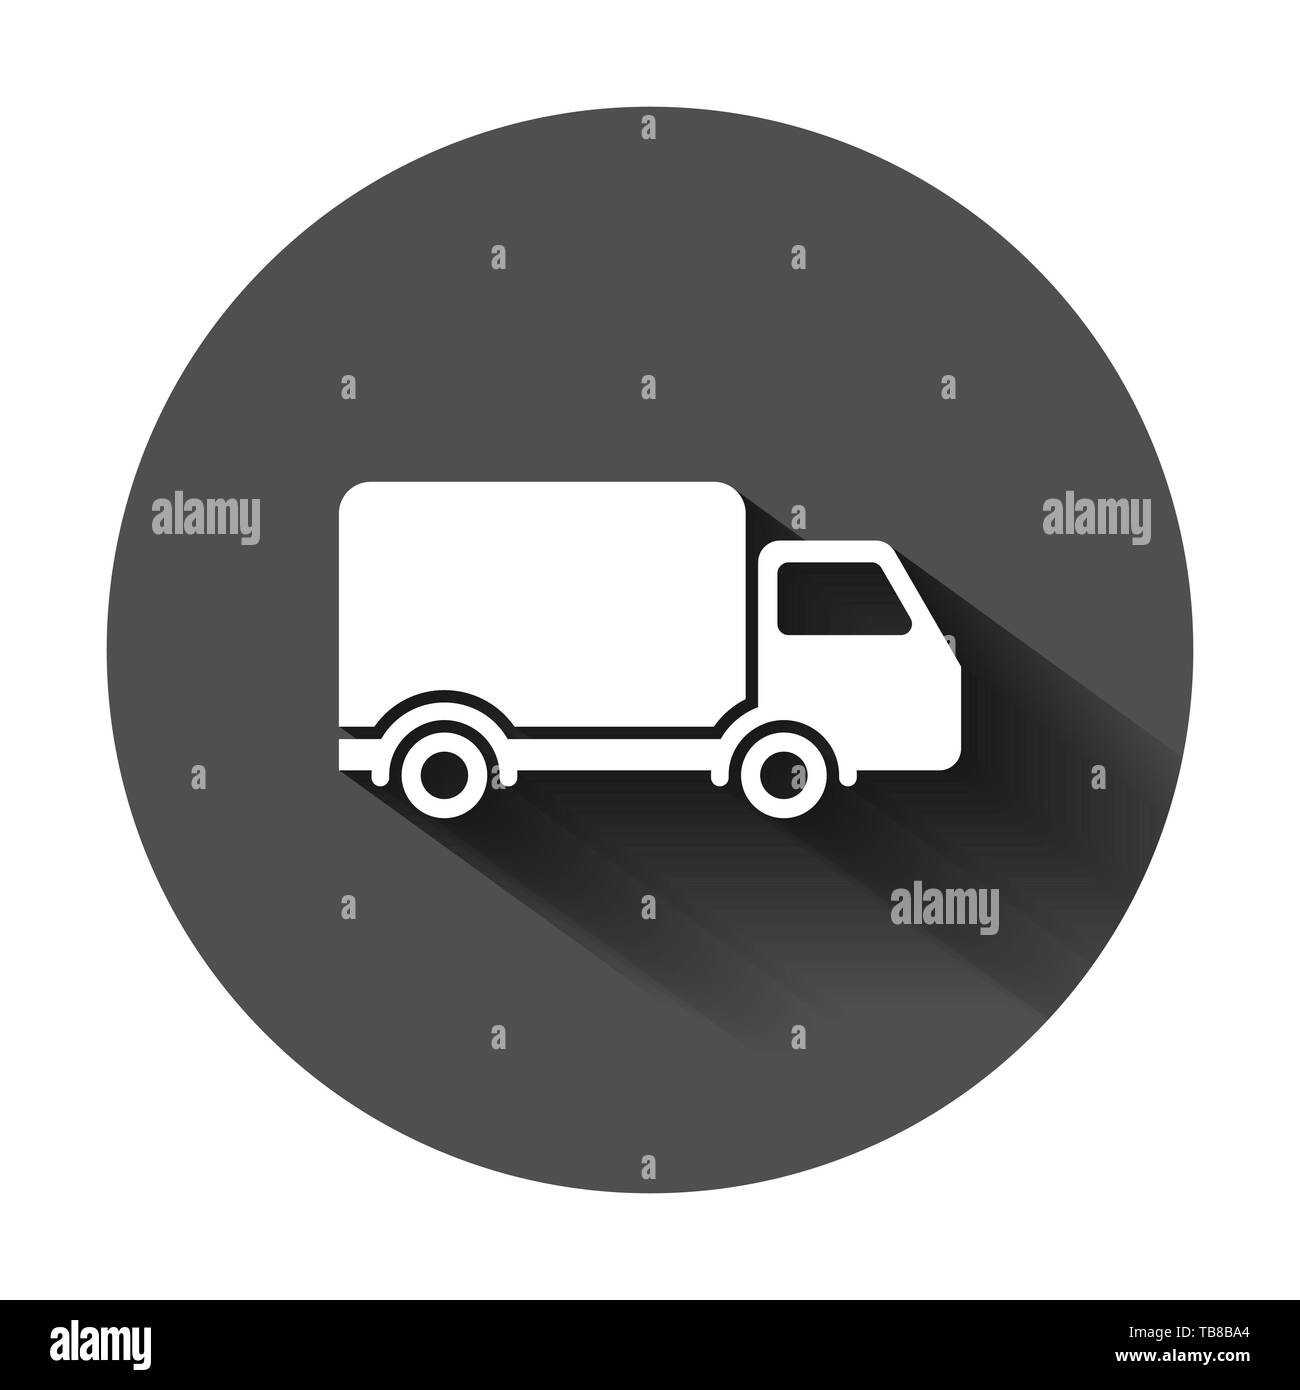 Delivery truck sign icon in flat style. Van vector illustration on black round background with long shadow. Cargo car business concept. - Stock Image